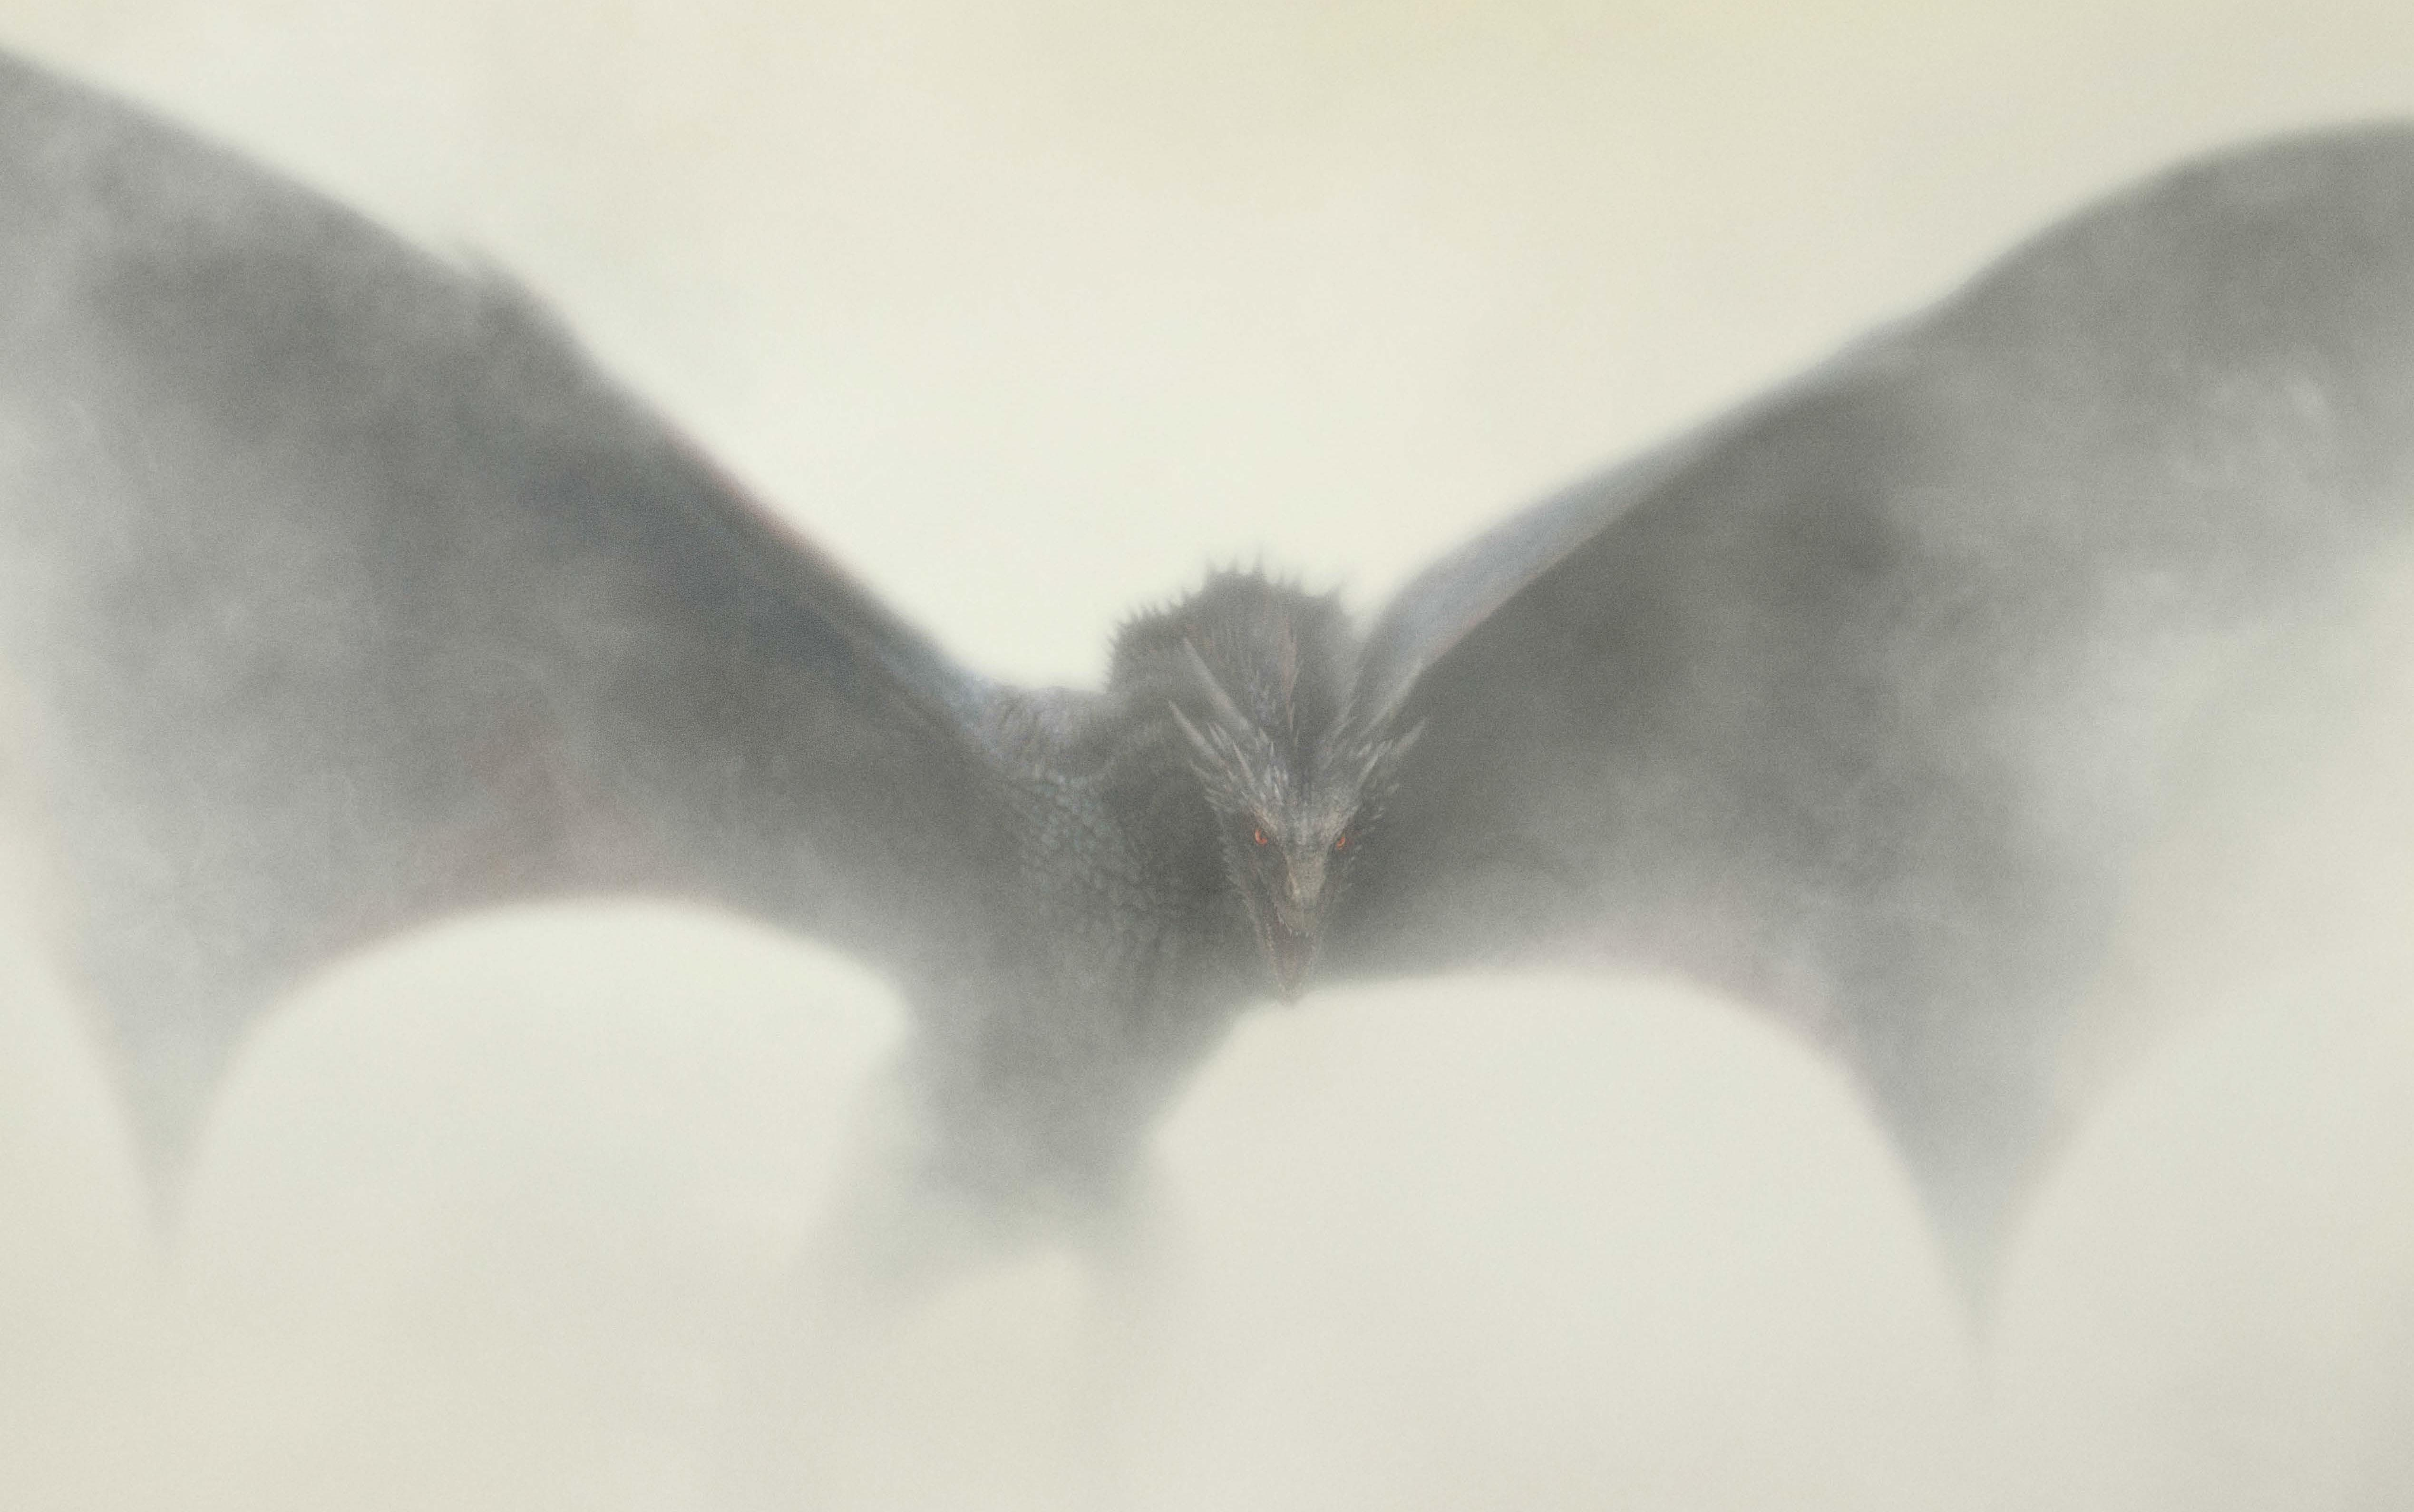 game of thrones season 5 dragons spoilers for the young